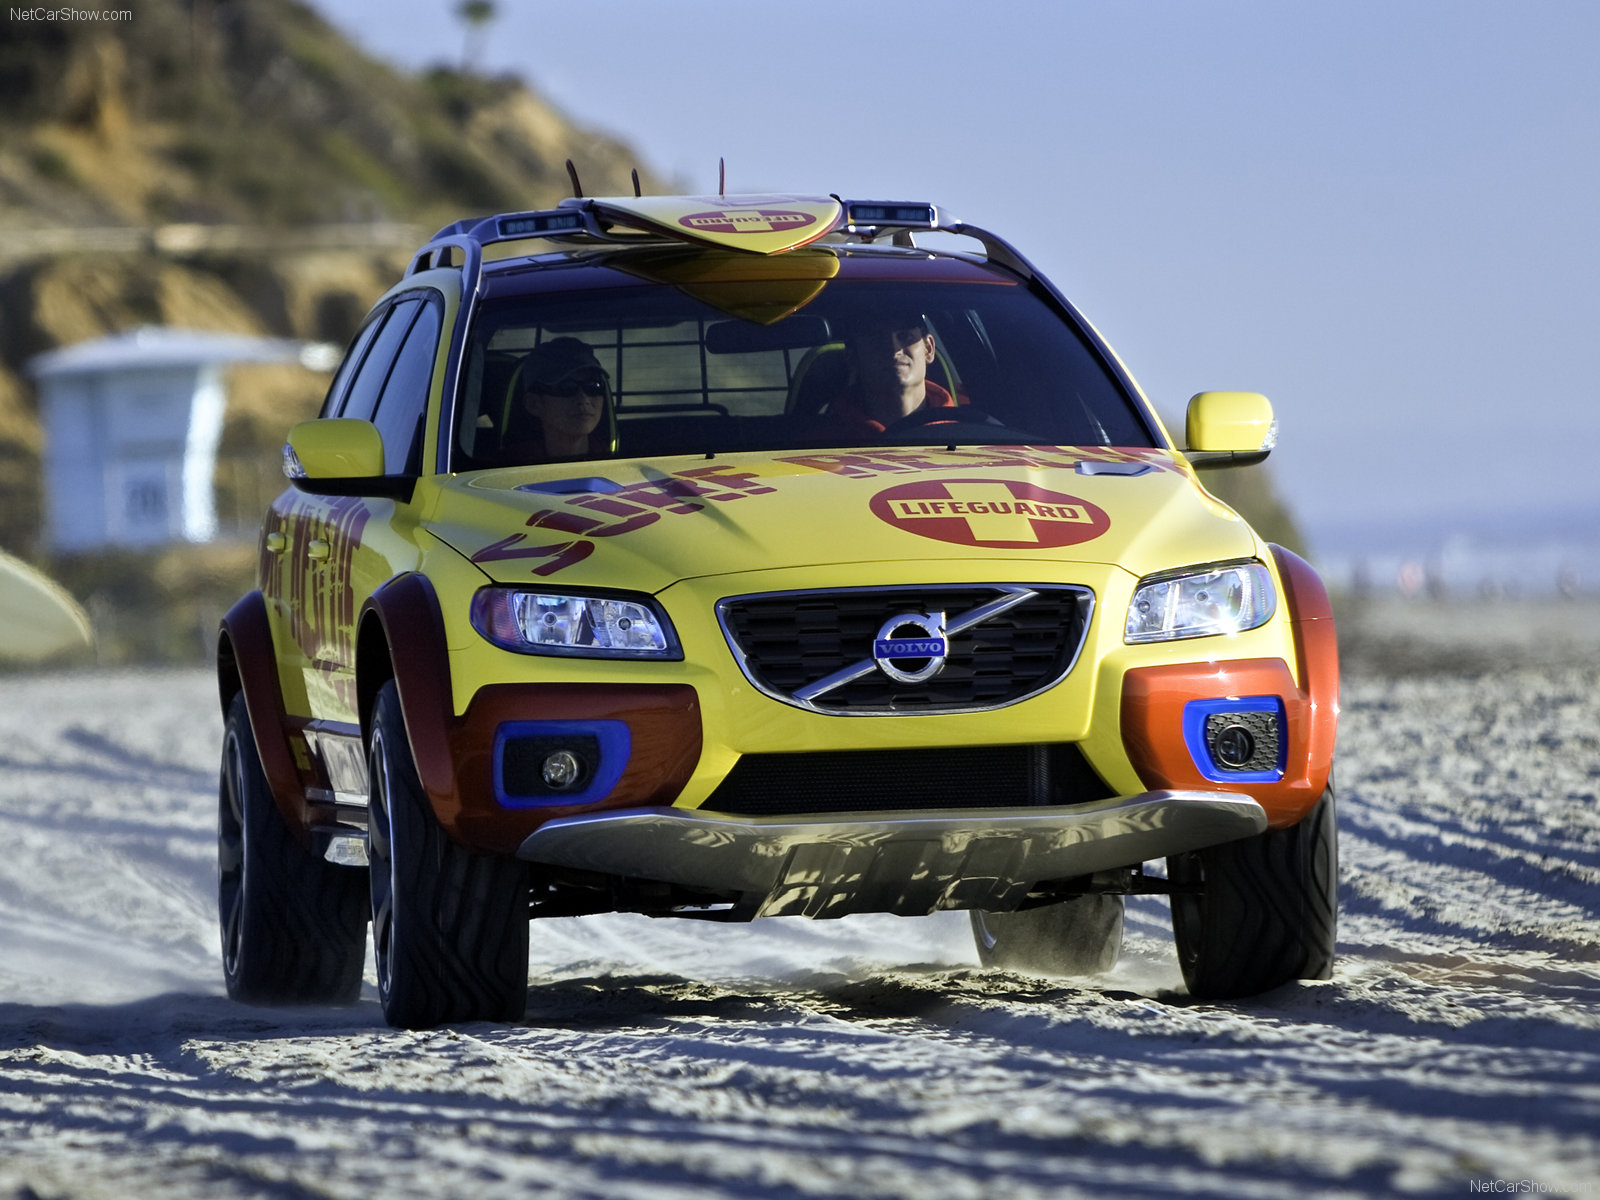 Volvo XC70 Surf Rescue photo 48847